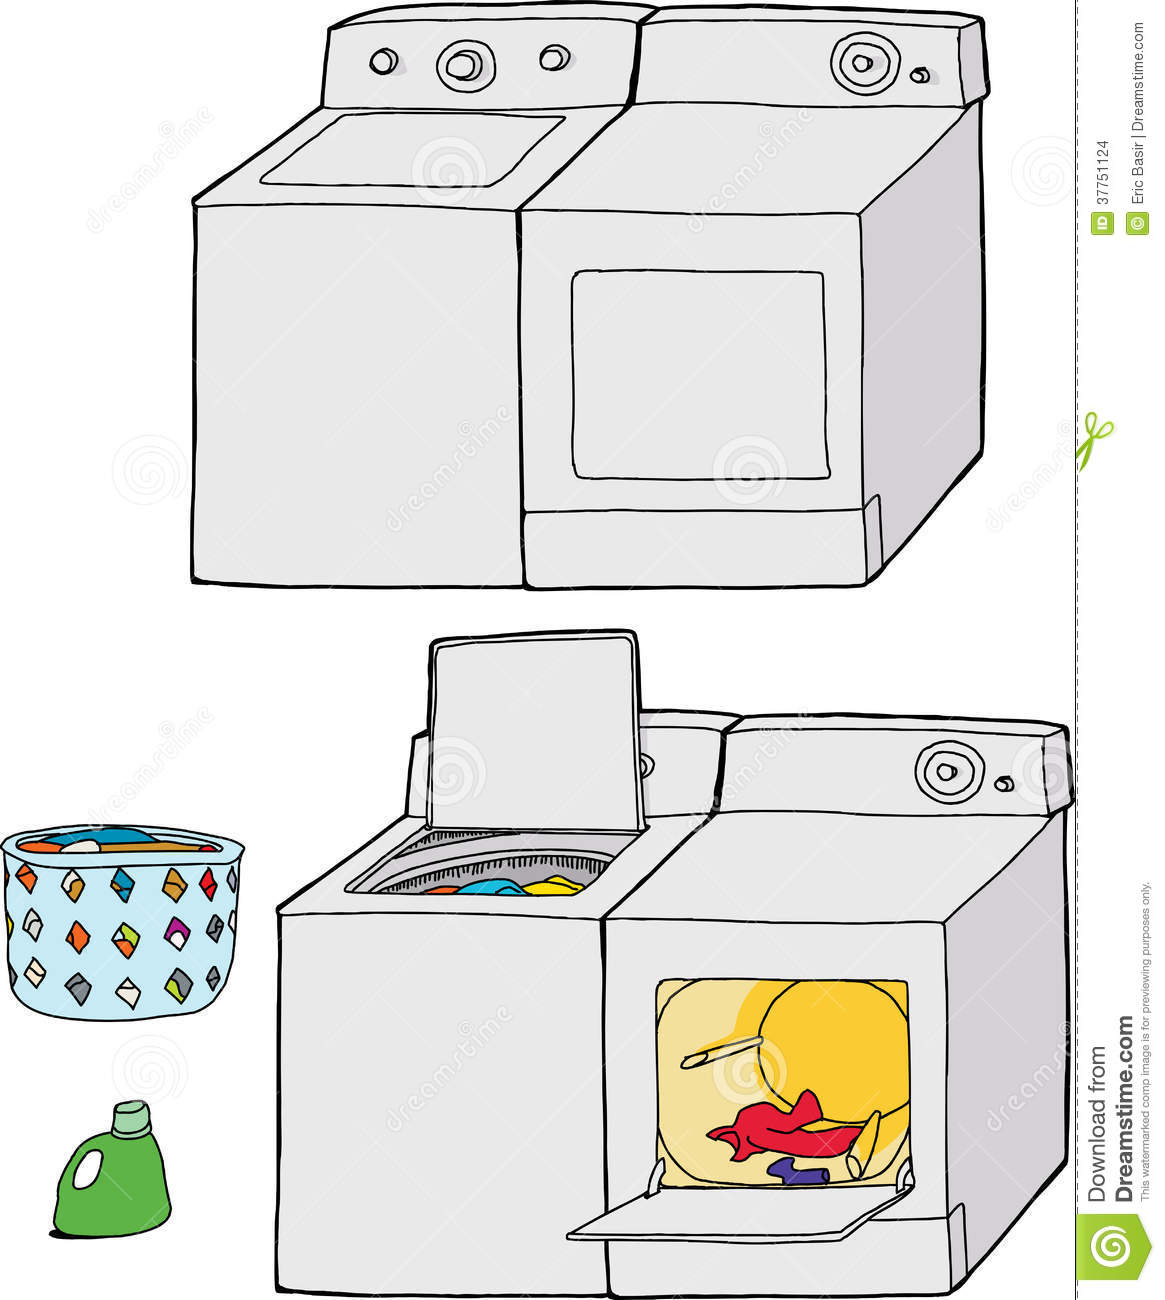 Cartoon Washer And Dryer ~ Washing machine and dryer stock vector illustration of